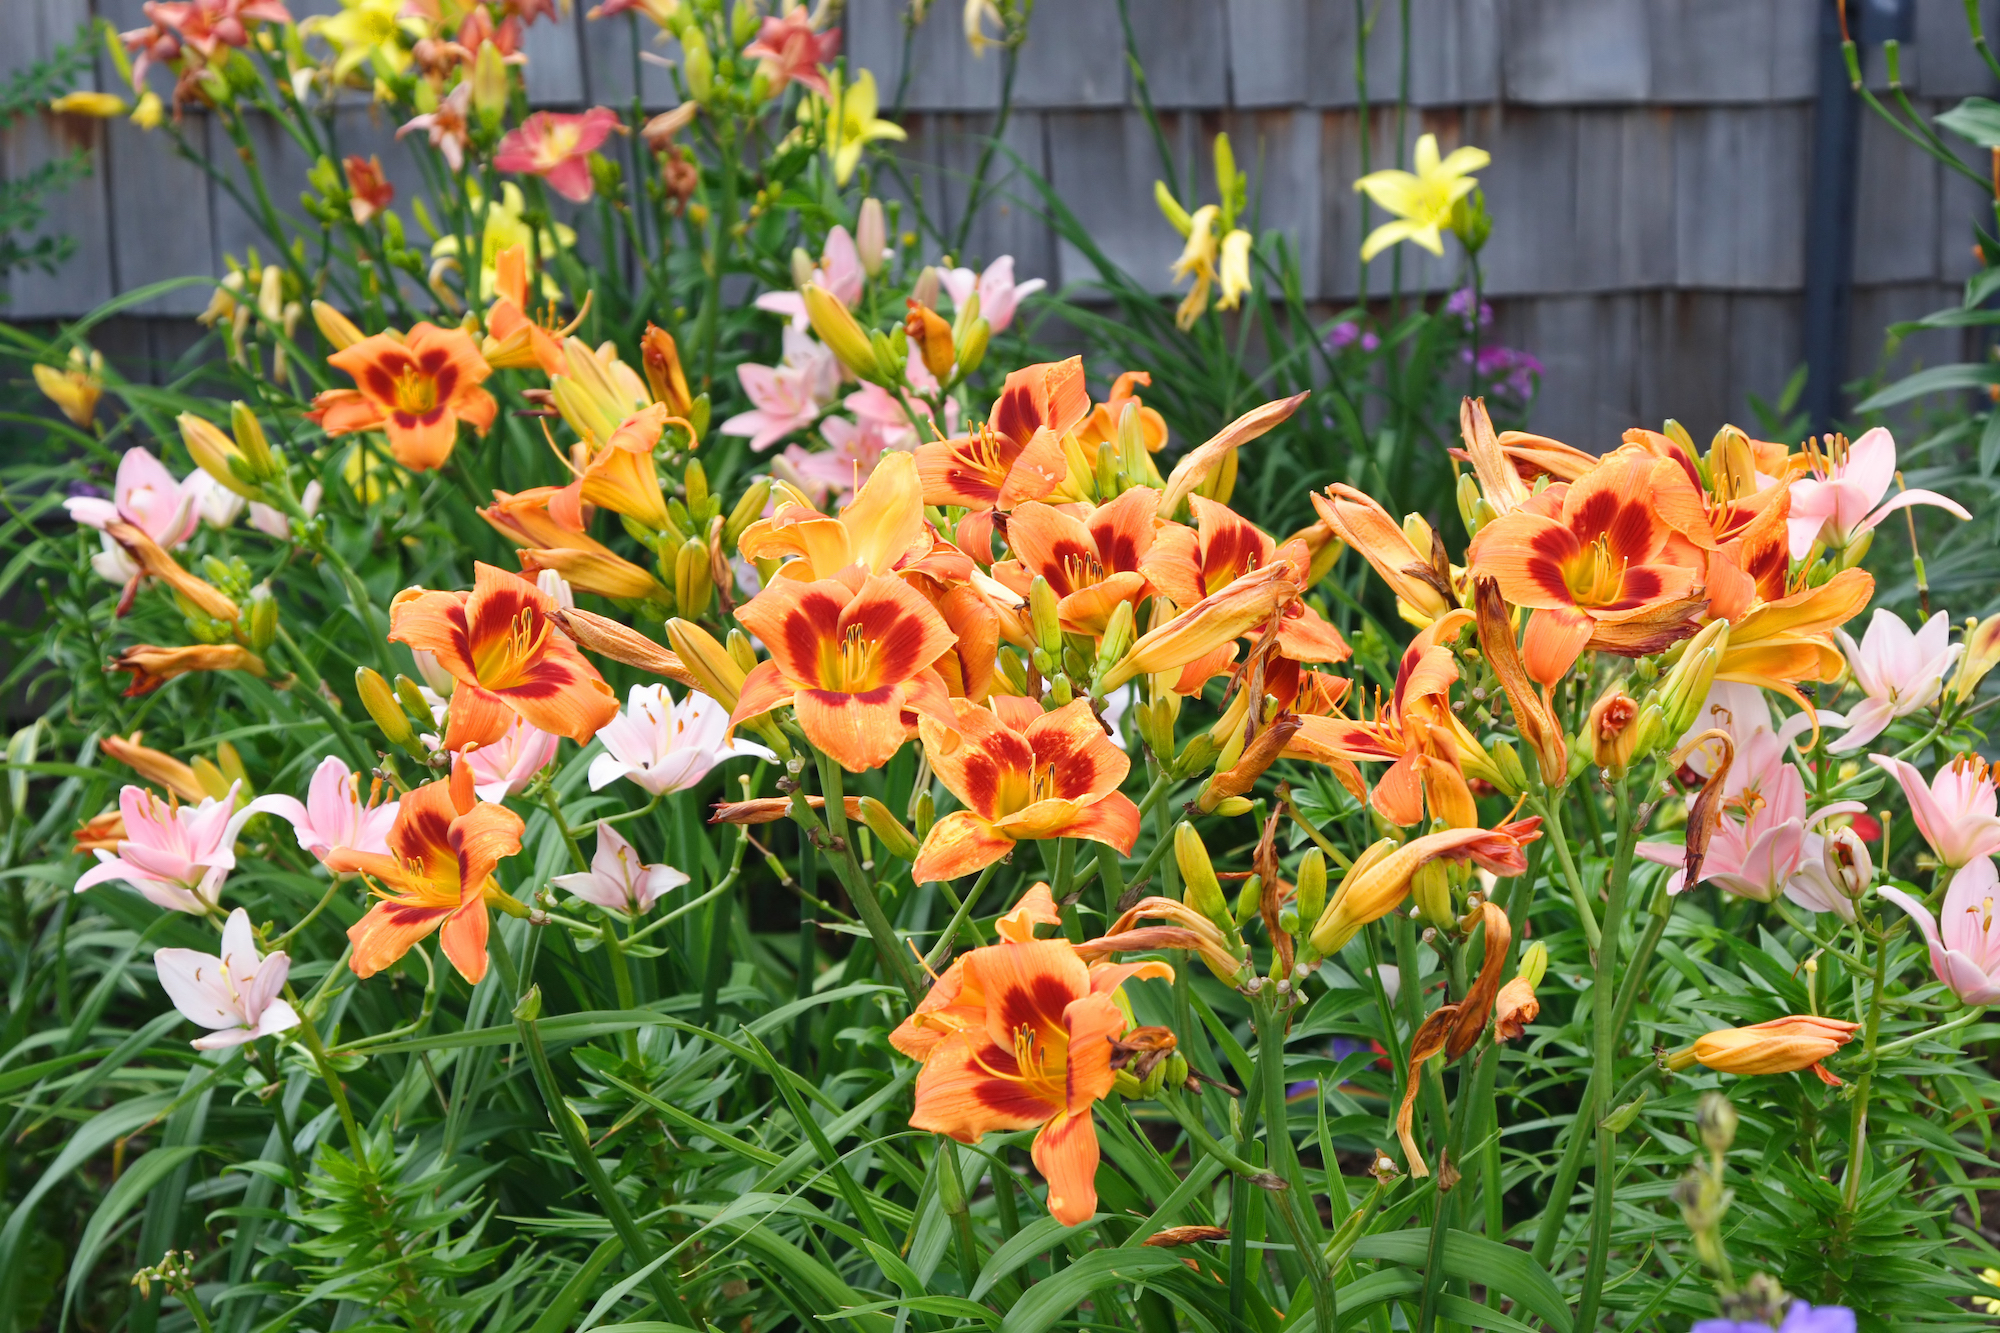 Daylily blooms in yard